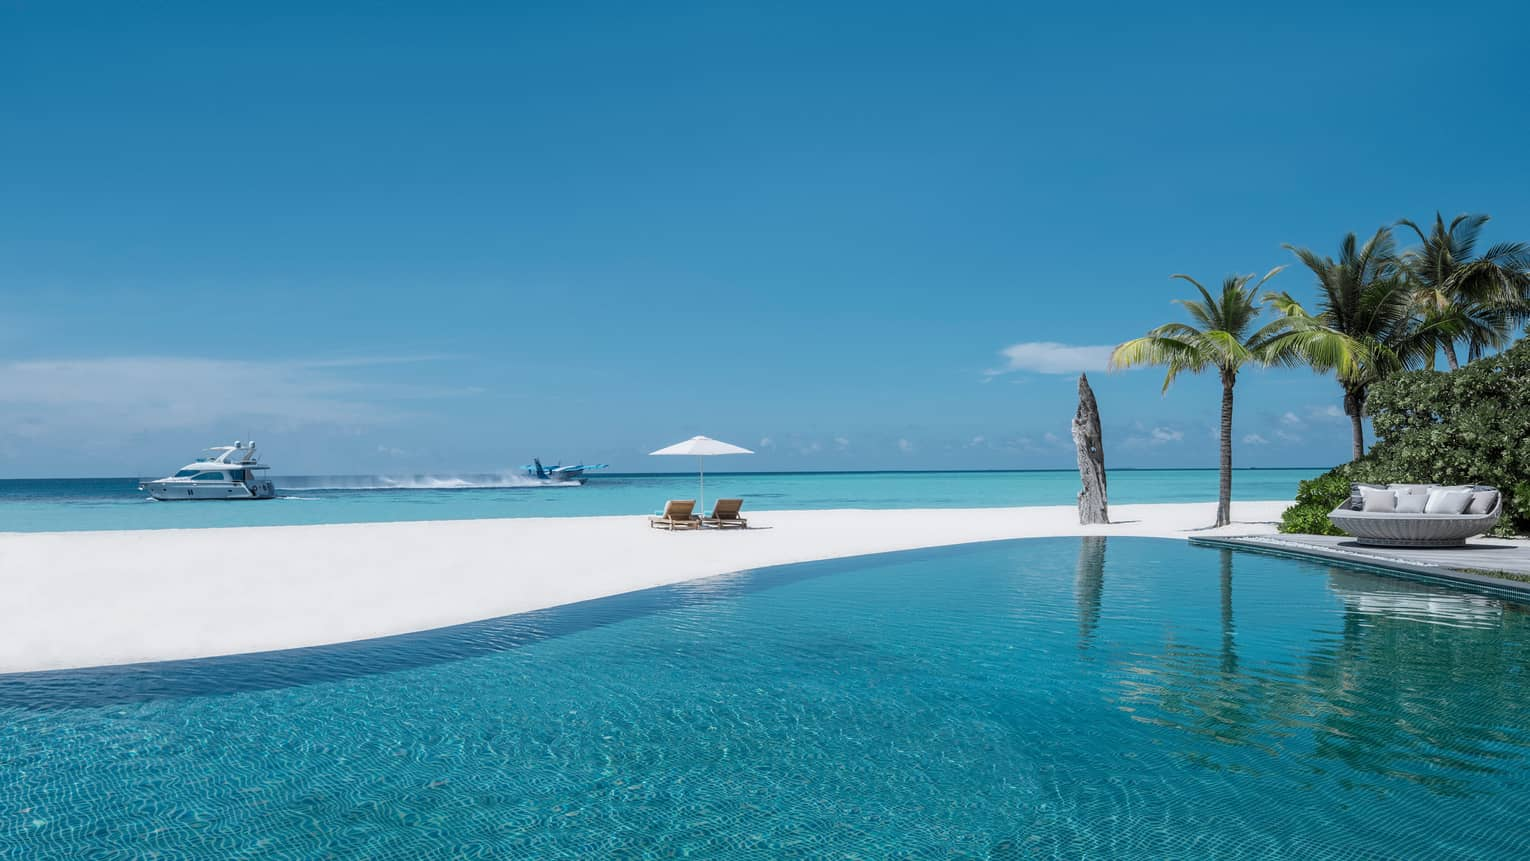 Infinity swimming pool by white sand beach, plane and catamaran boat in lagoon